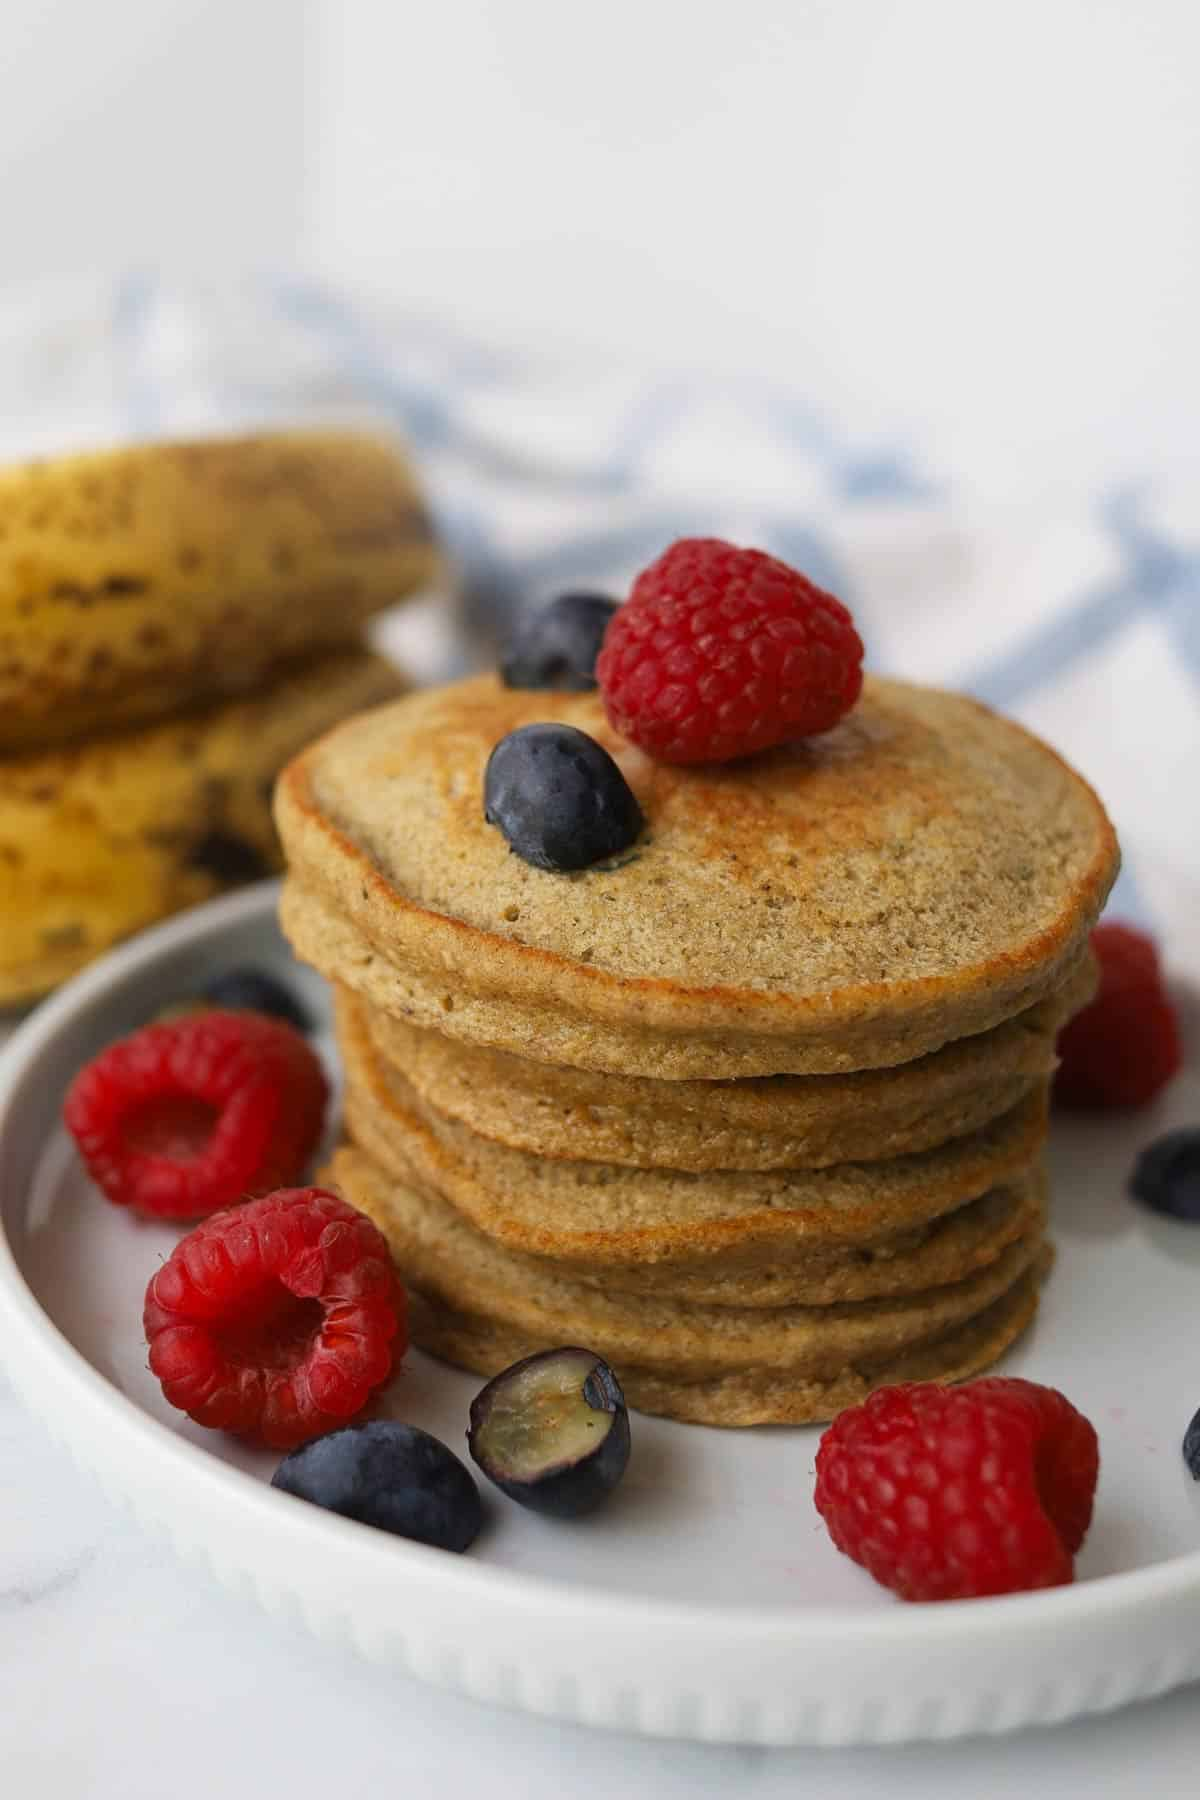 Stack of small pancakes garnished with raspberries and blueberries